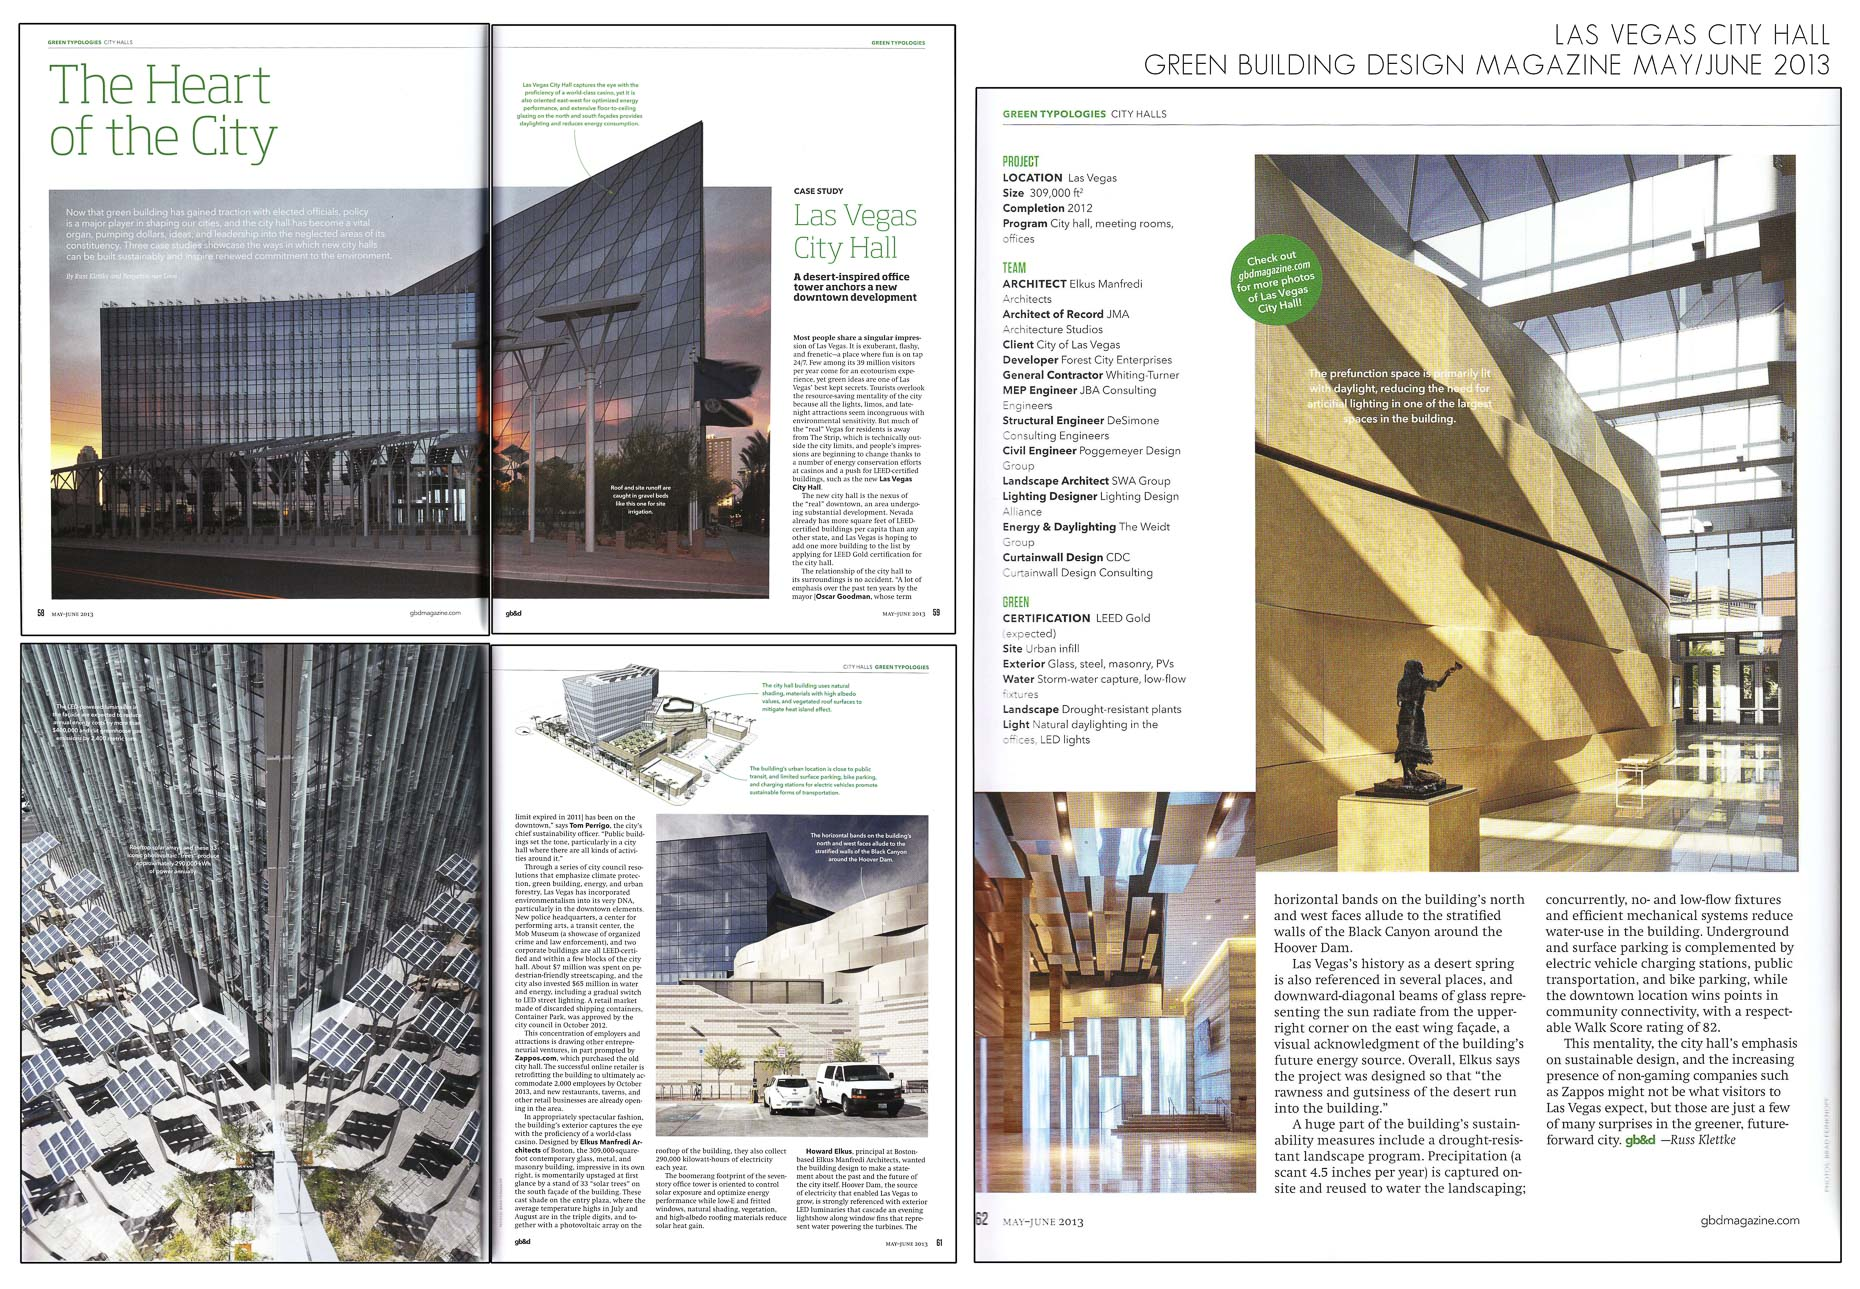 Building Design + Construction August 2013 Issue Las Vegas City Hall